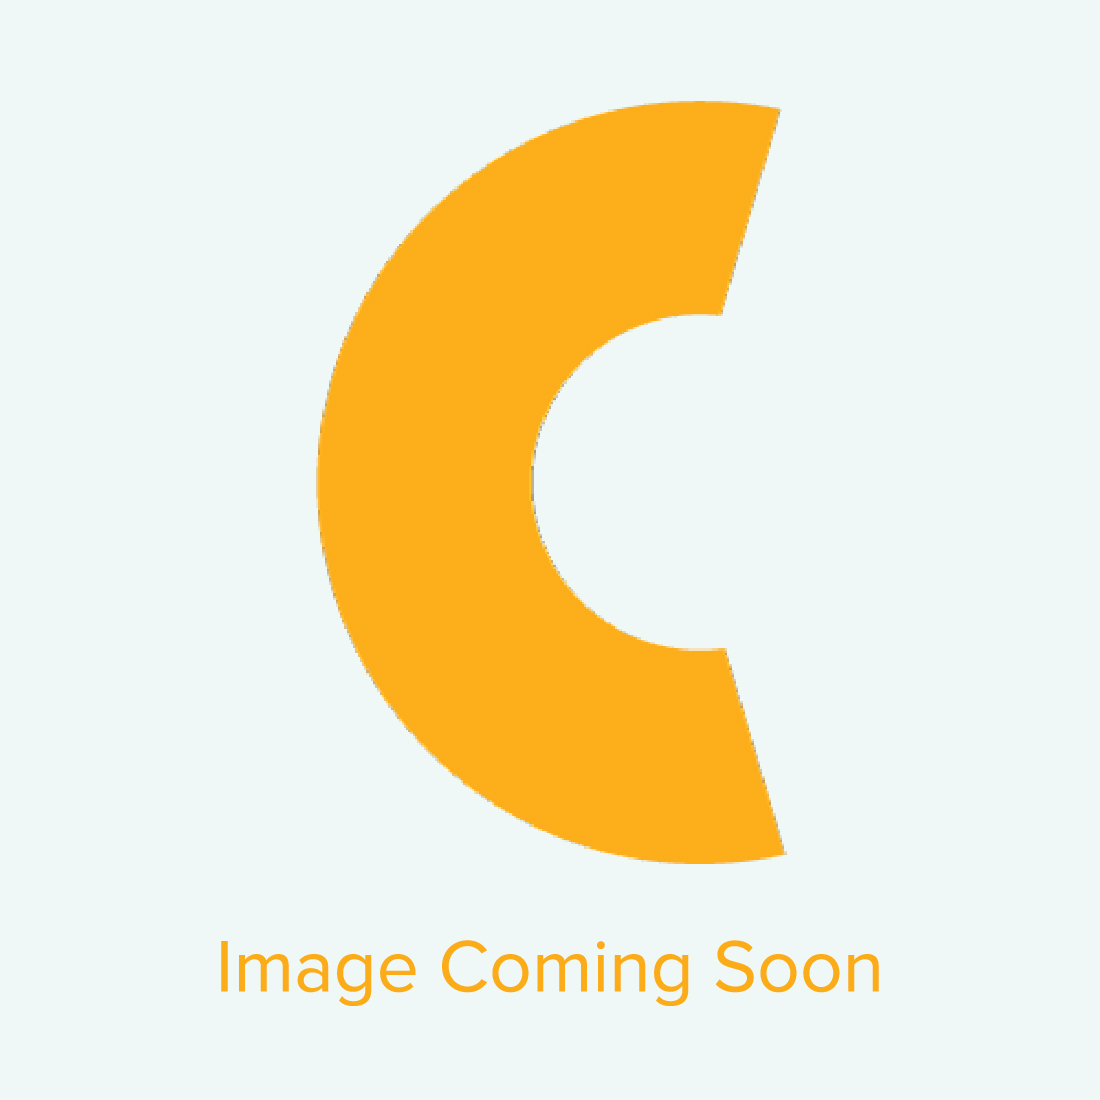 "Siser EasyWeed Heat Transfer Vinyl - 12"" x 25 yards"